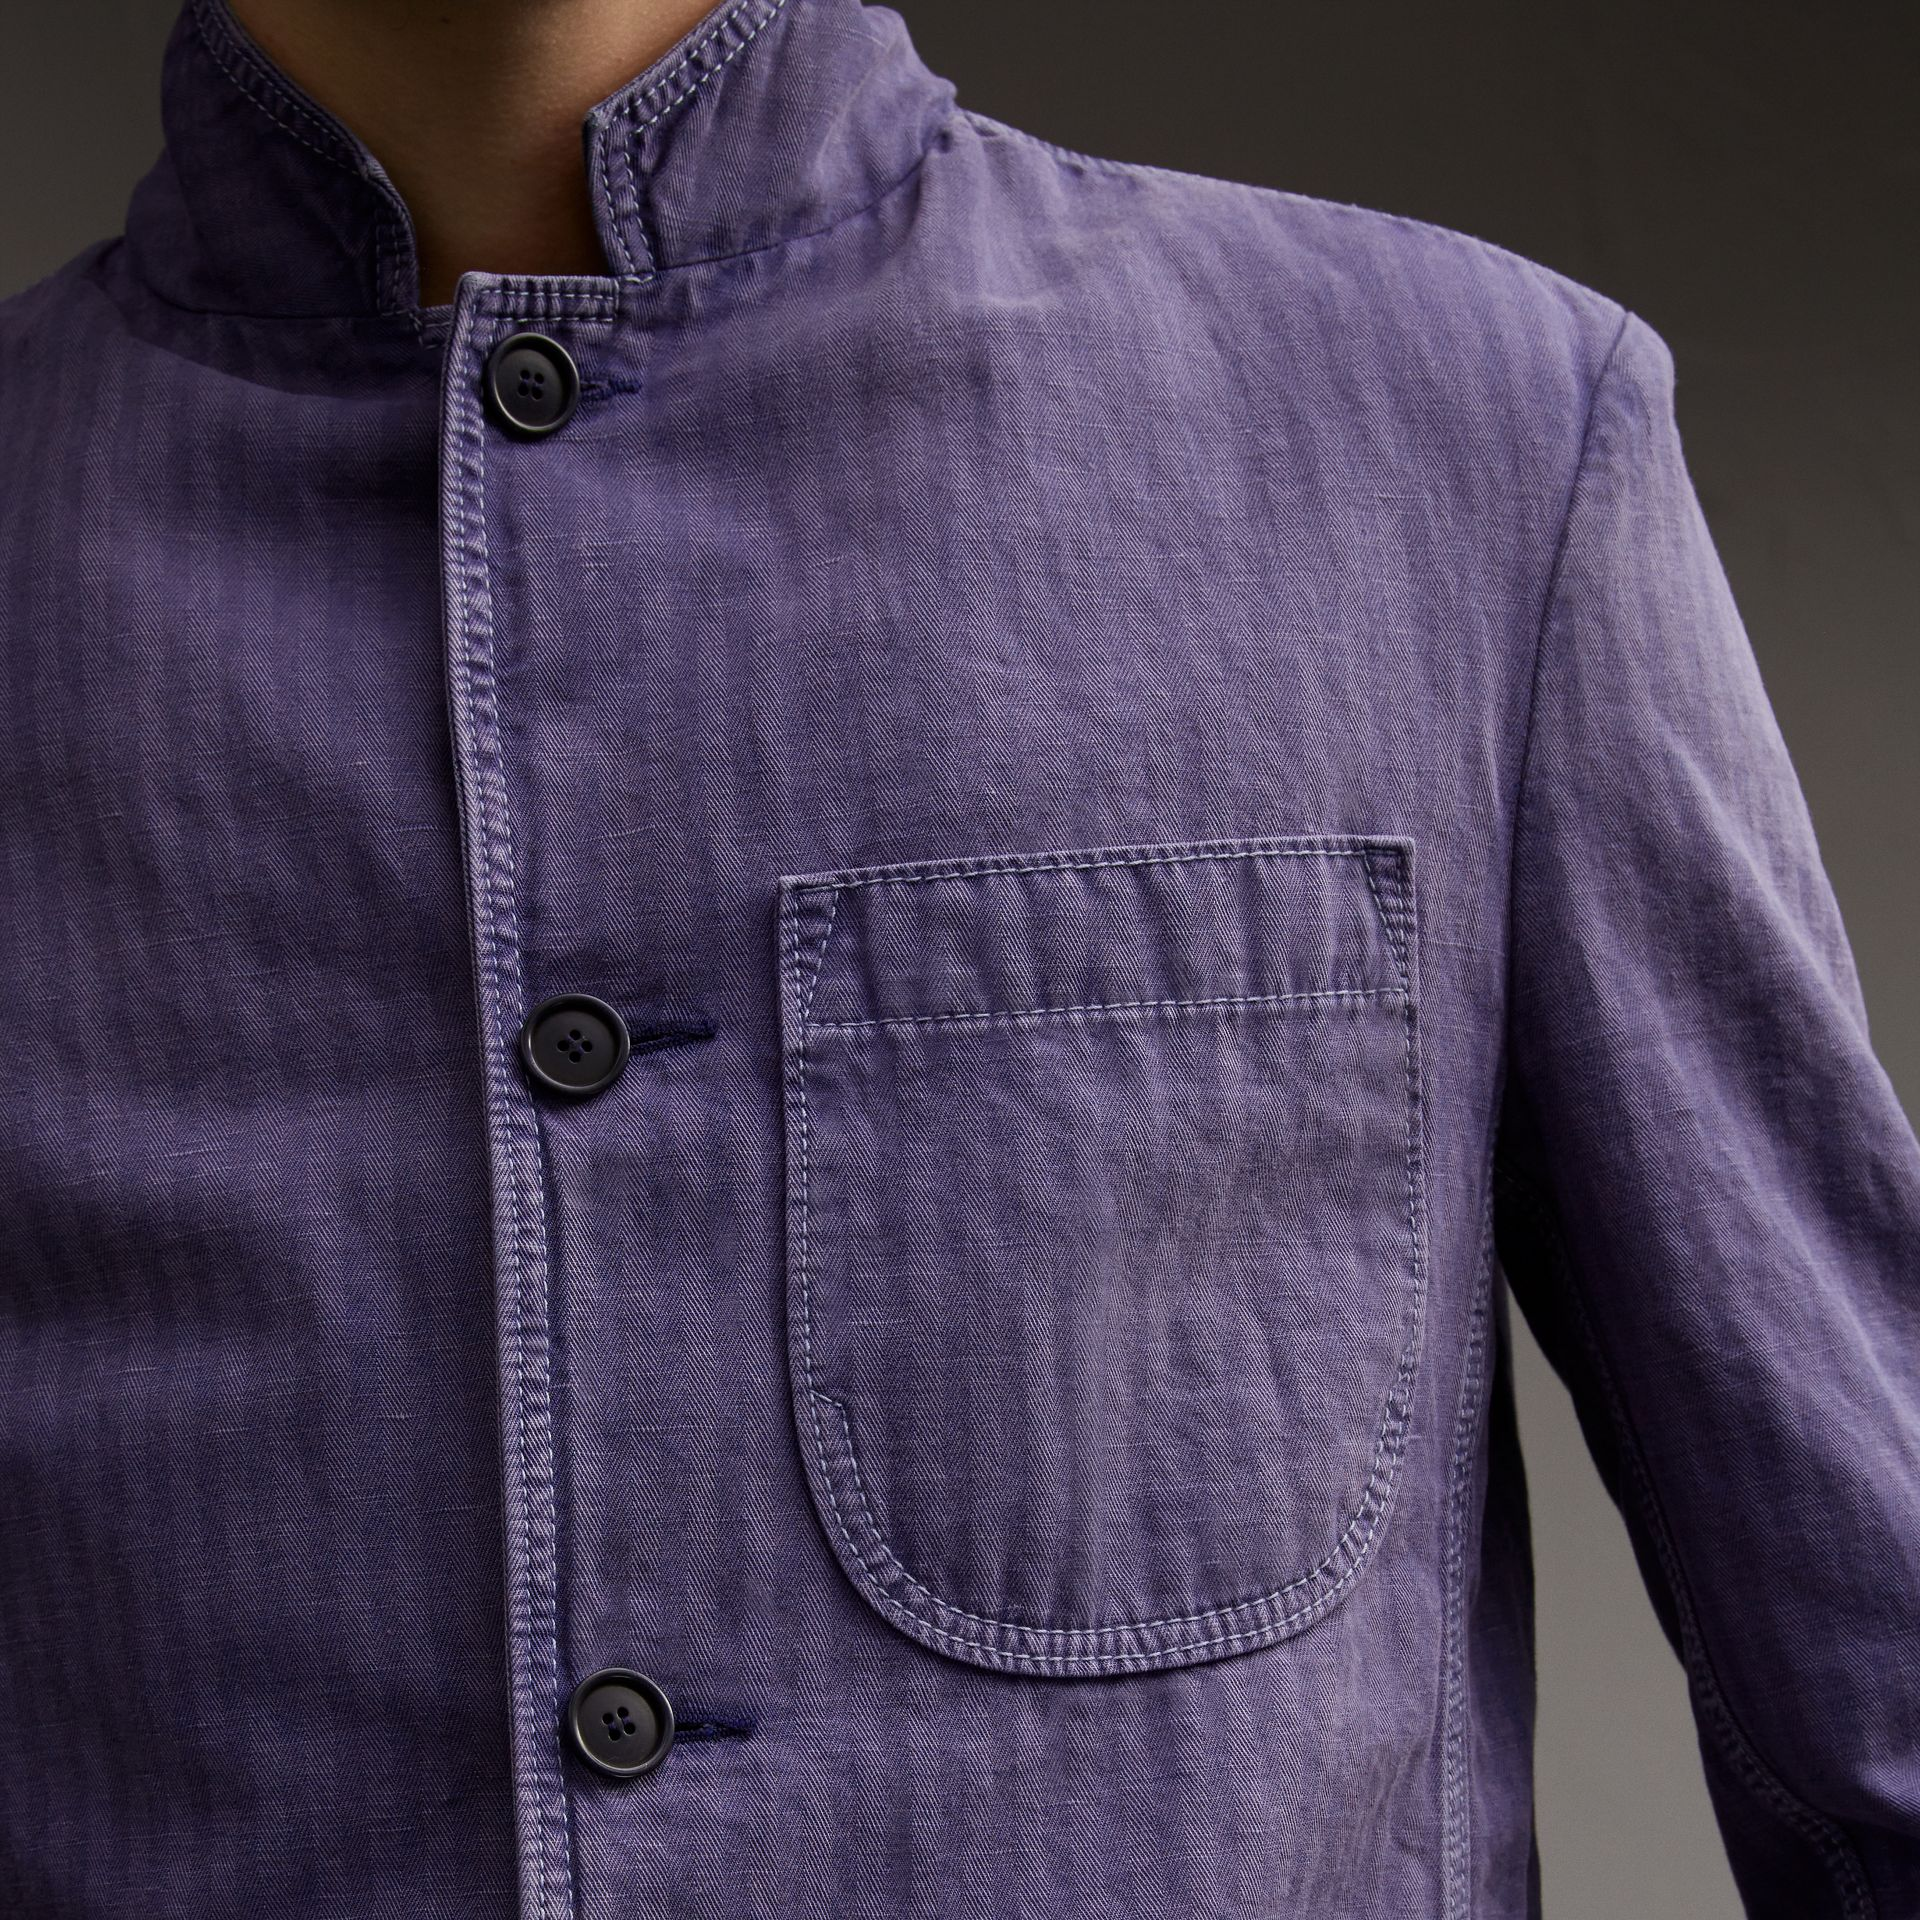 Herringbone Cotton Linen Workwear Jacket in Indigo - Men | Burberry - gallery image 4